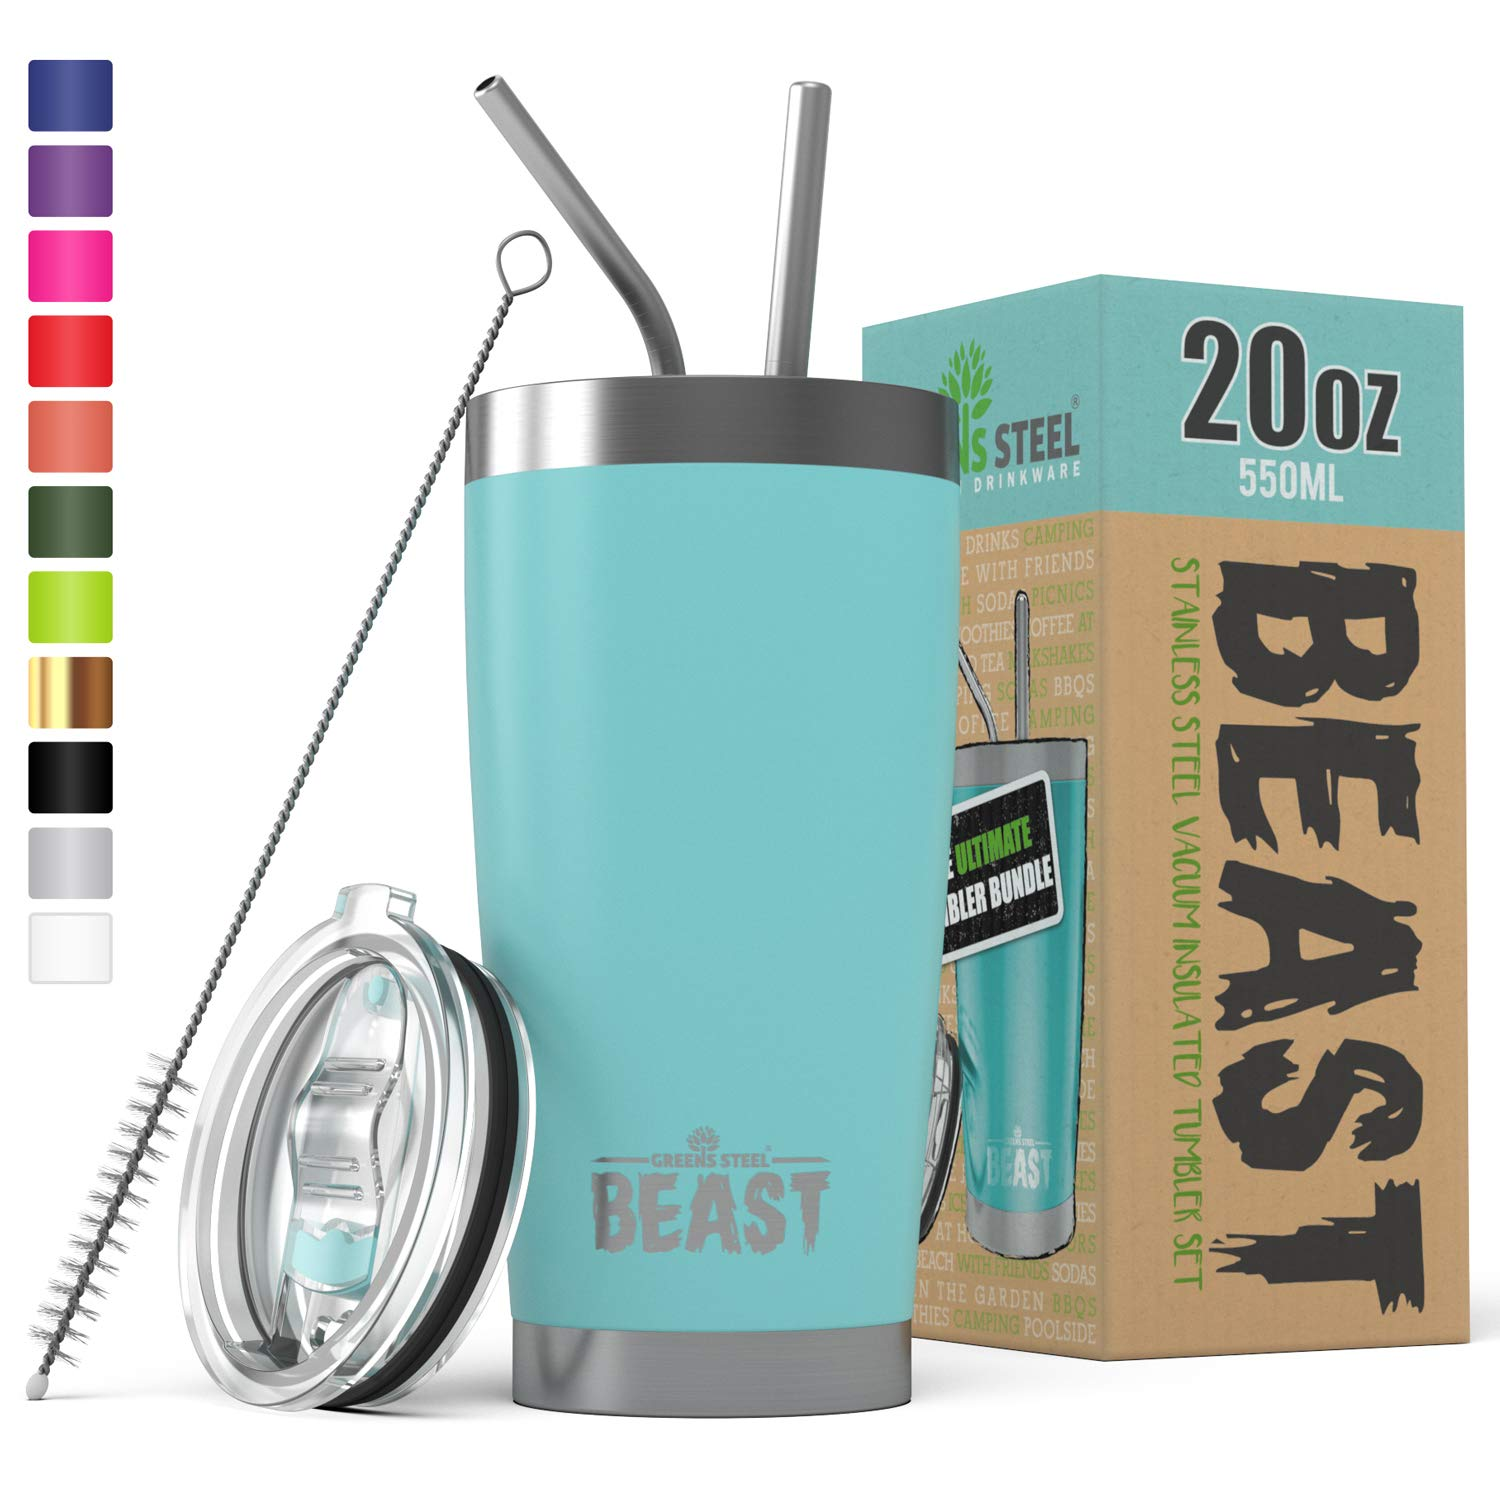 BEAST 20oz Tumbler Insulated Stainless Steel Coffee Cup with Lid, 2 Straws, Brush